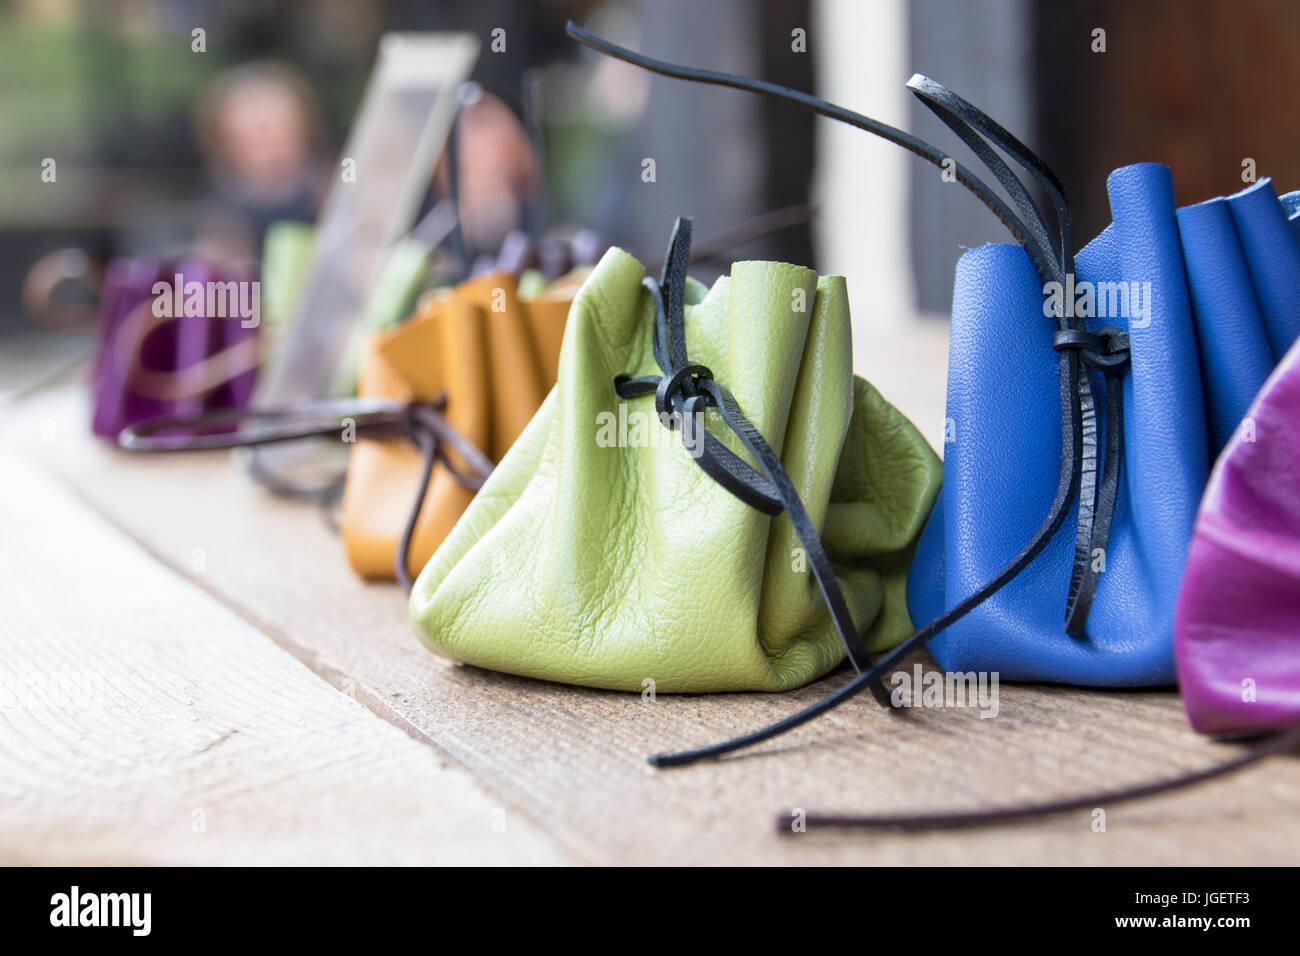 handmade leather purses in bright colors on display in an outdoor market in the Czech Republic Stock Photo